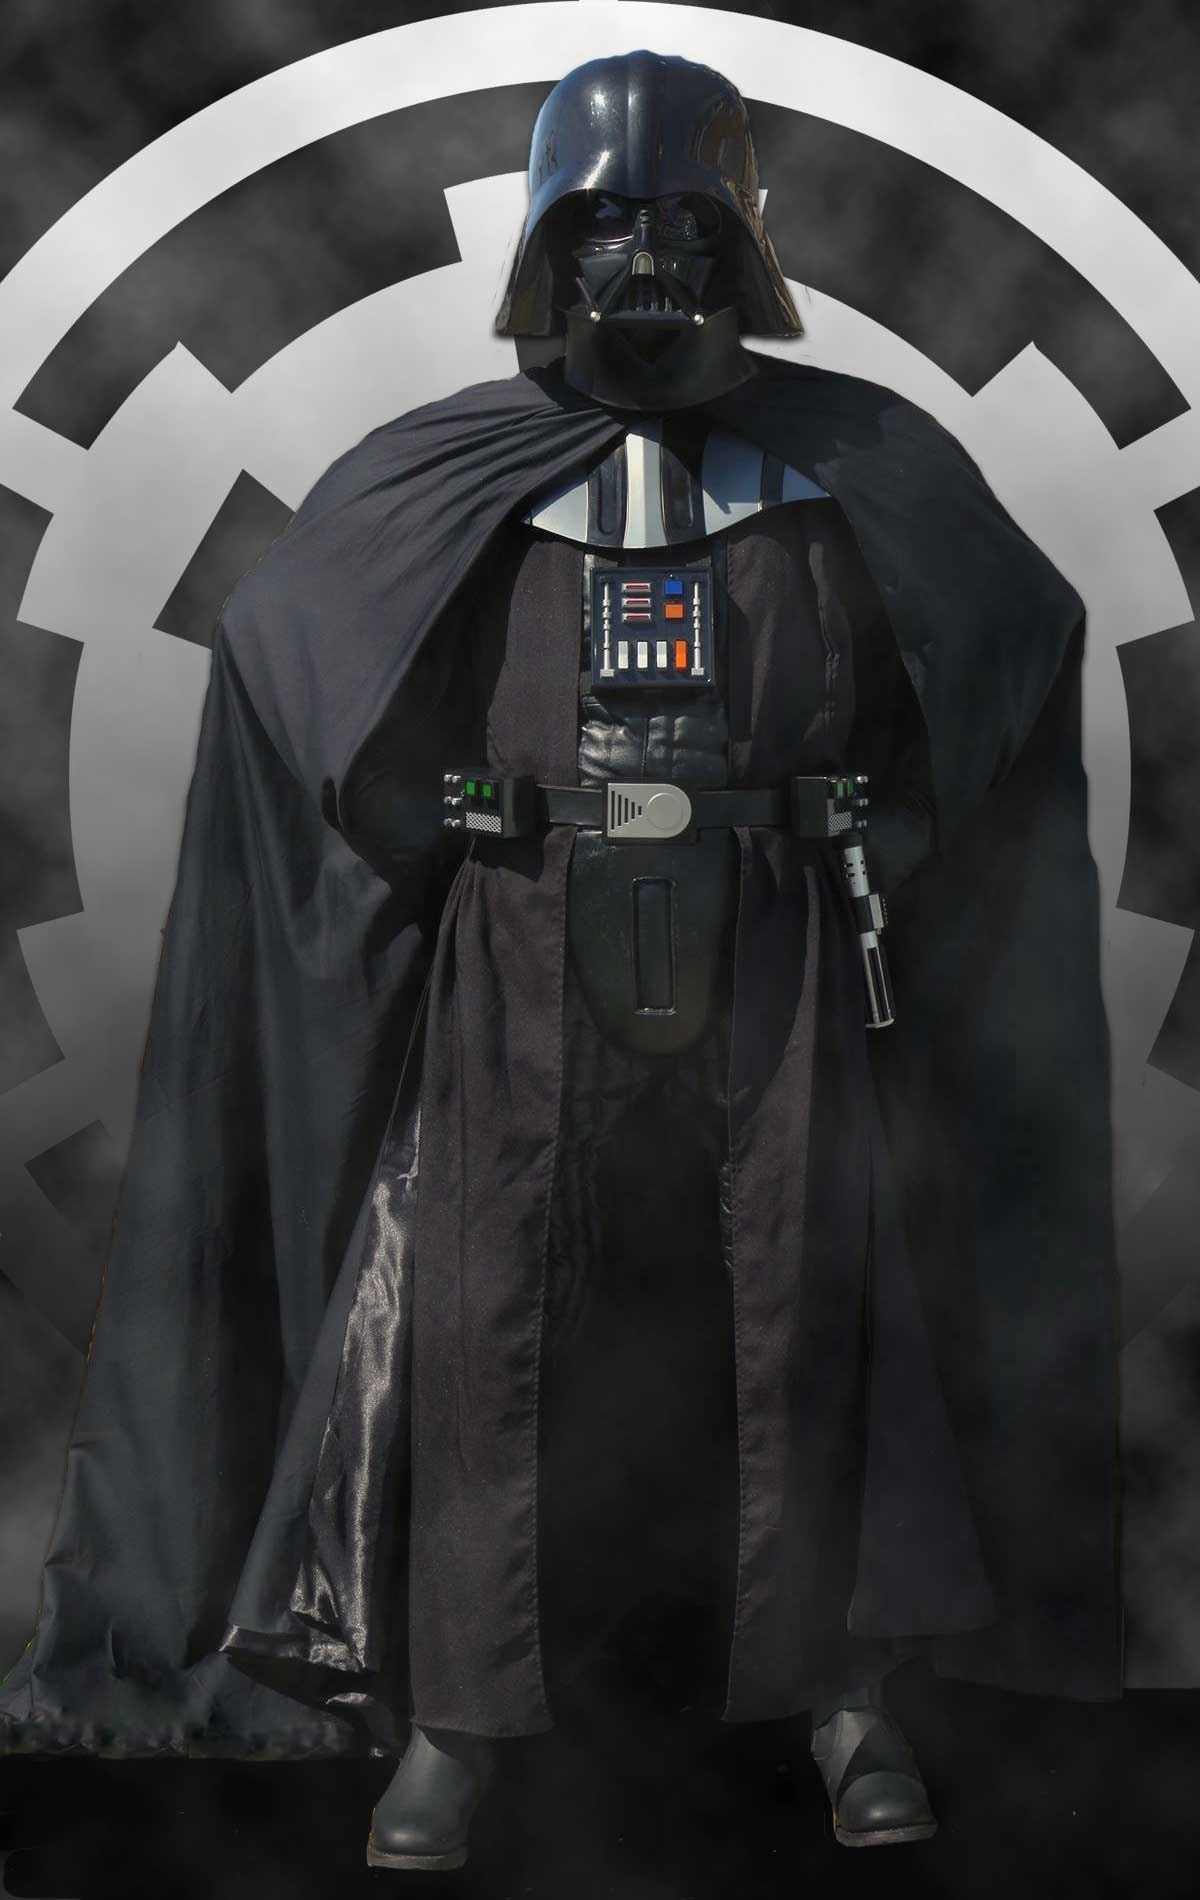 STAR WARS : Costumes and Toys - Darth Vader Costume Build